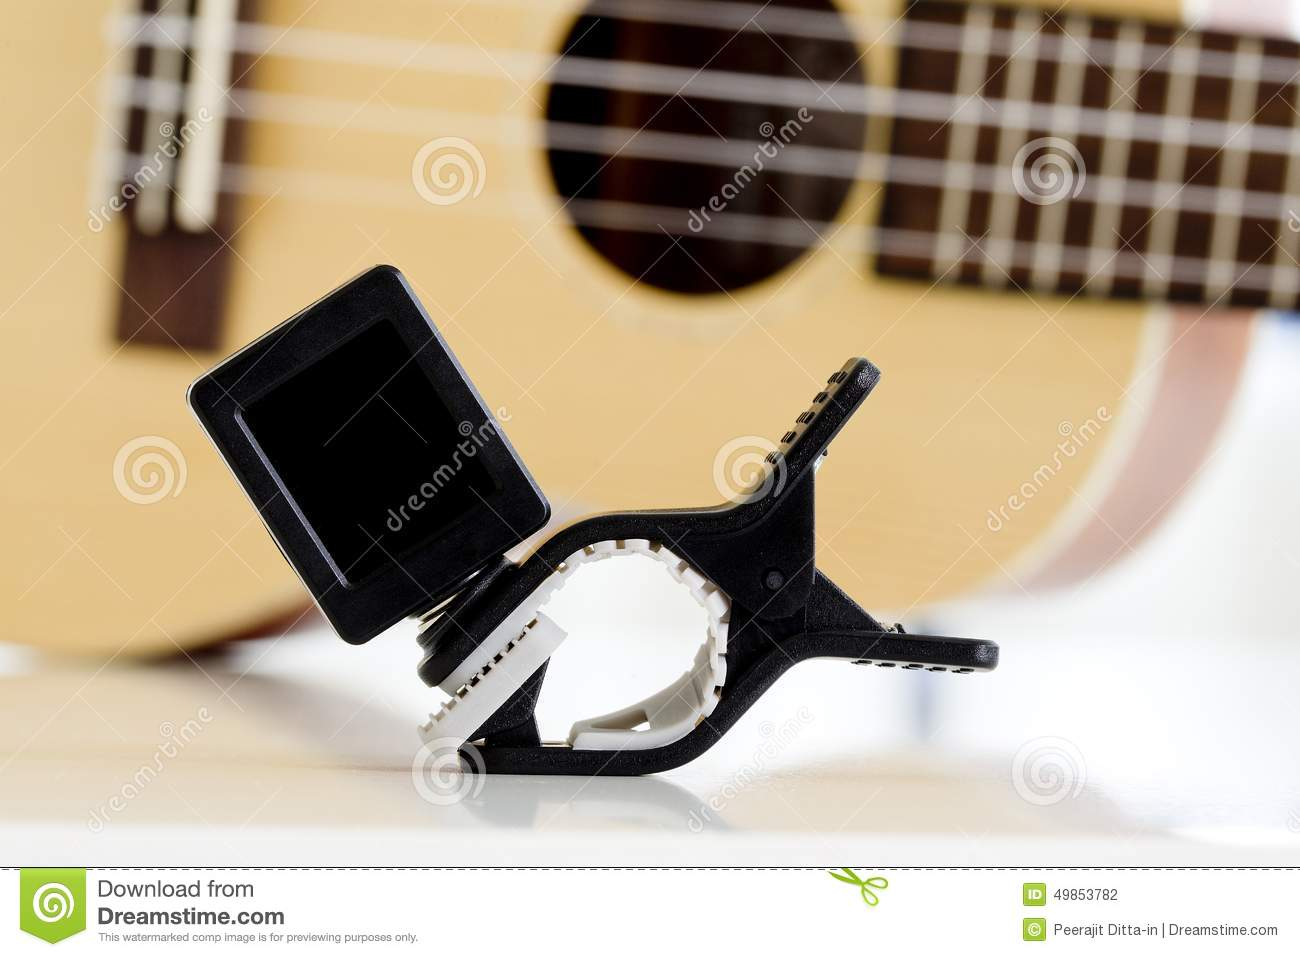 clip tuner equipment for tuning the ukulele guitar sound stock photo image of machine chord. Black Bedroom Furniture Sets. Home Design Ideas